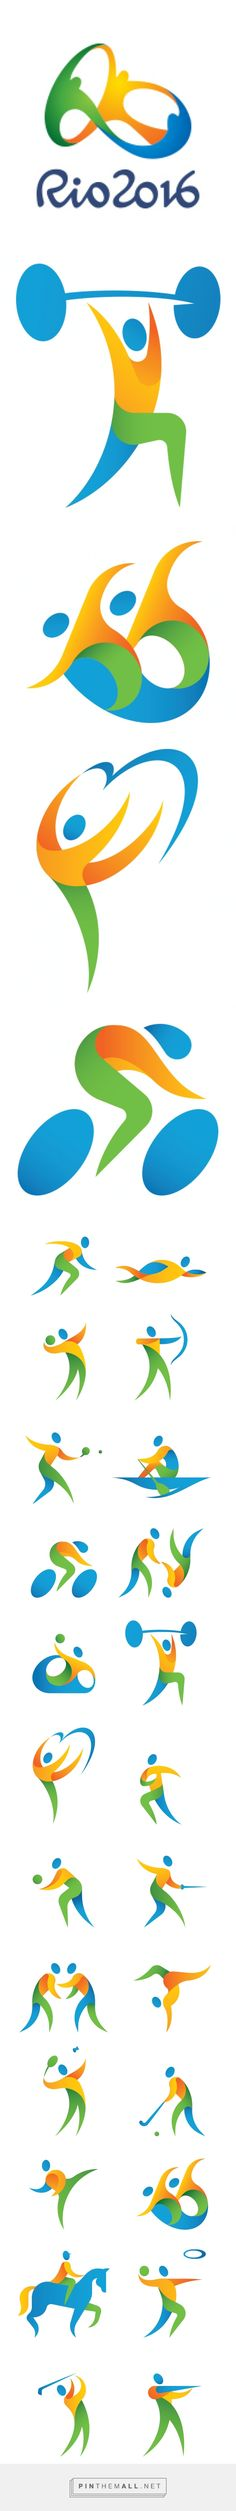 2016 Rio Olympic Pictograms on Behance-https://www.behance.net/gallery/24787821/2016-Rio-Olympic-Pictograms